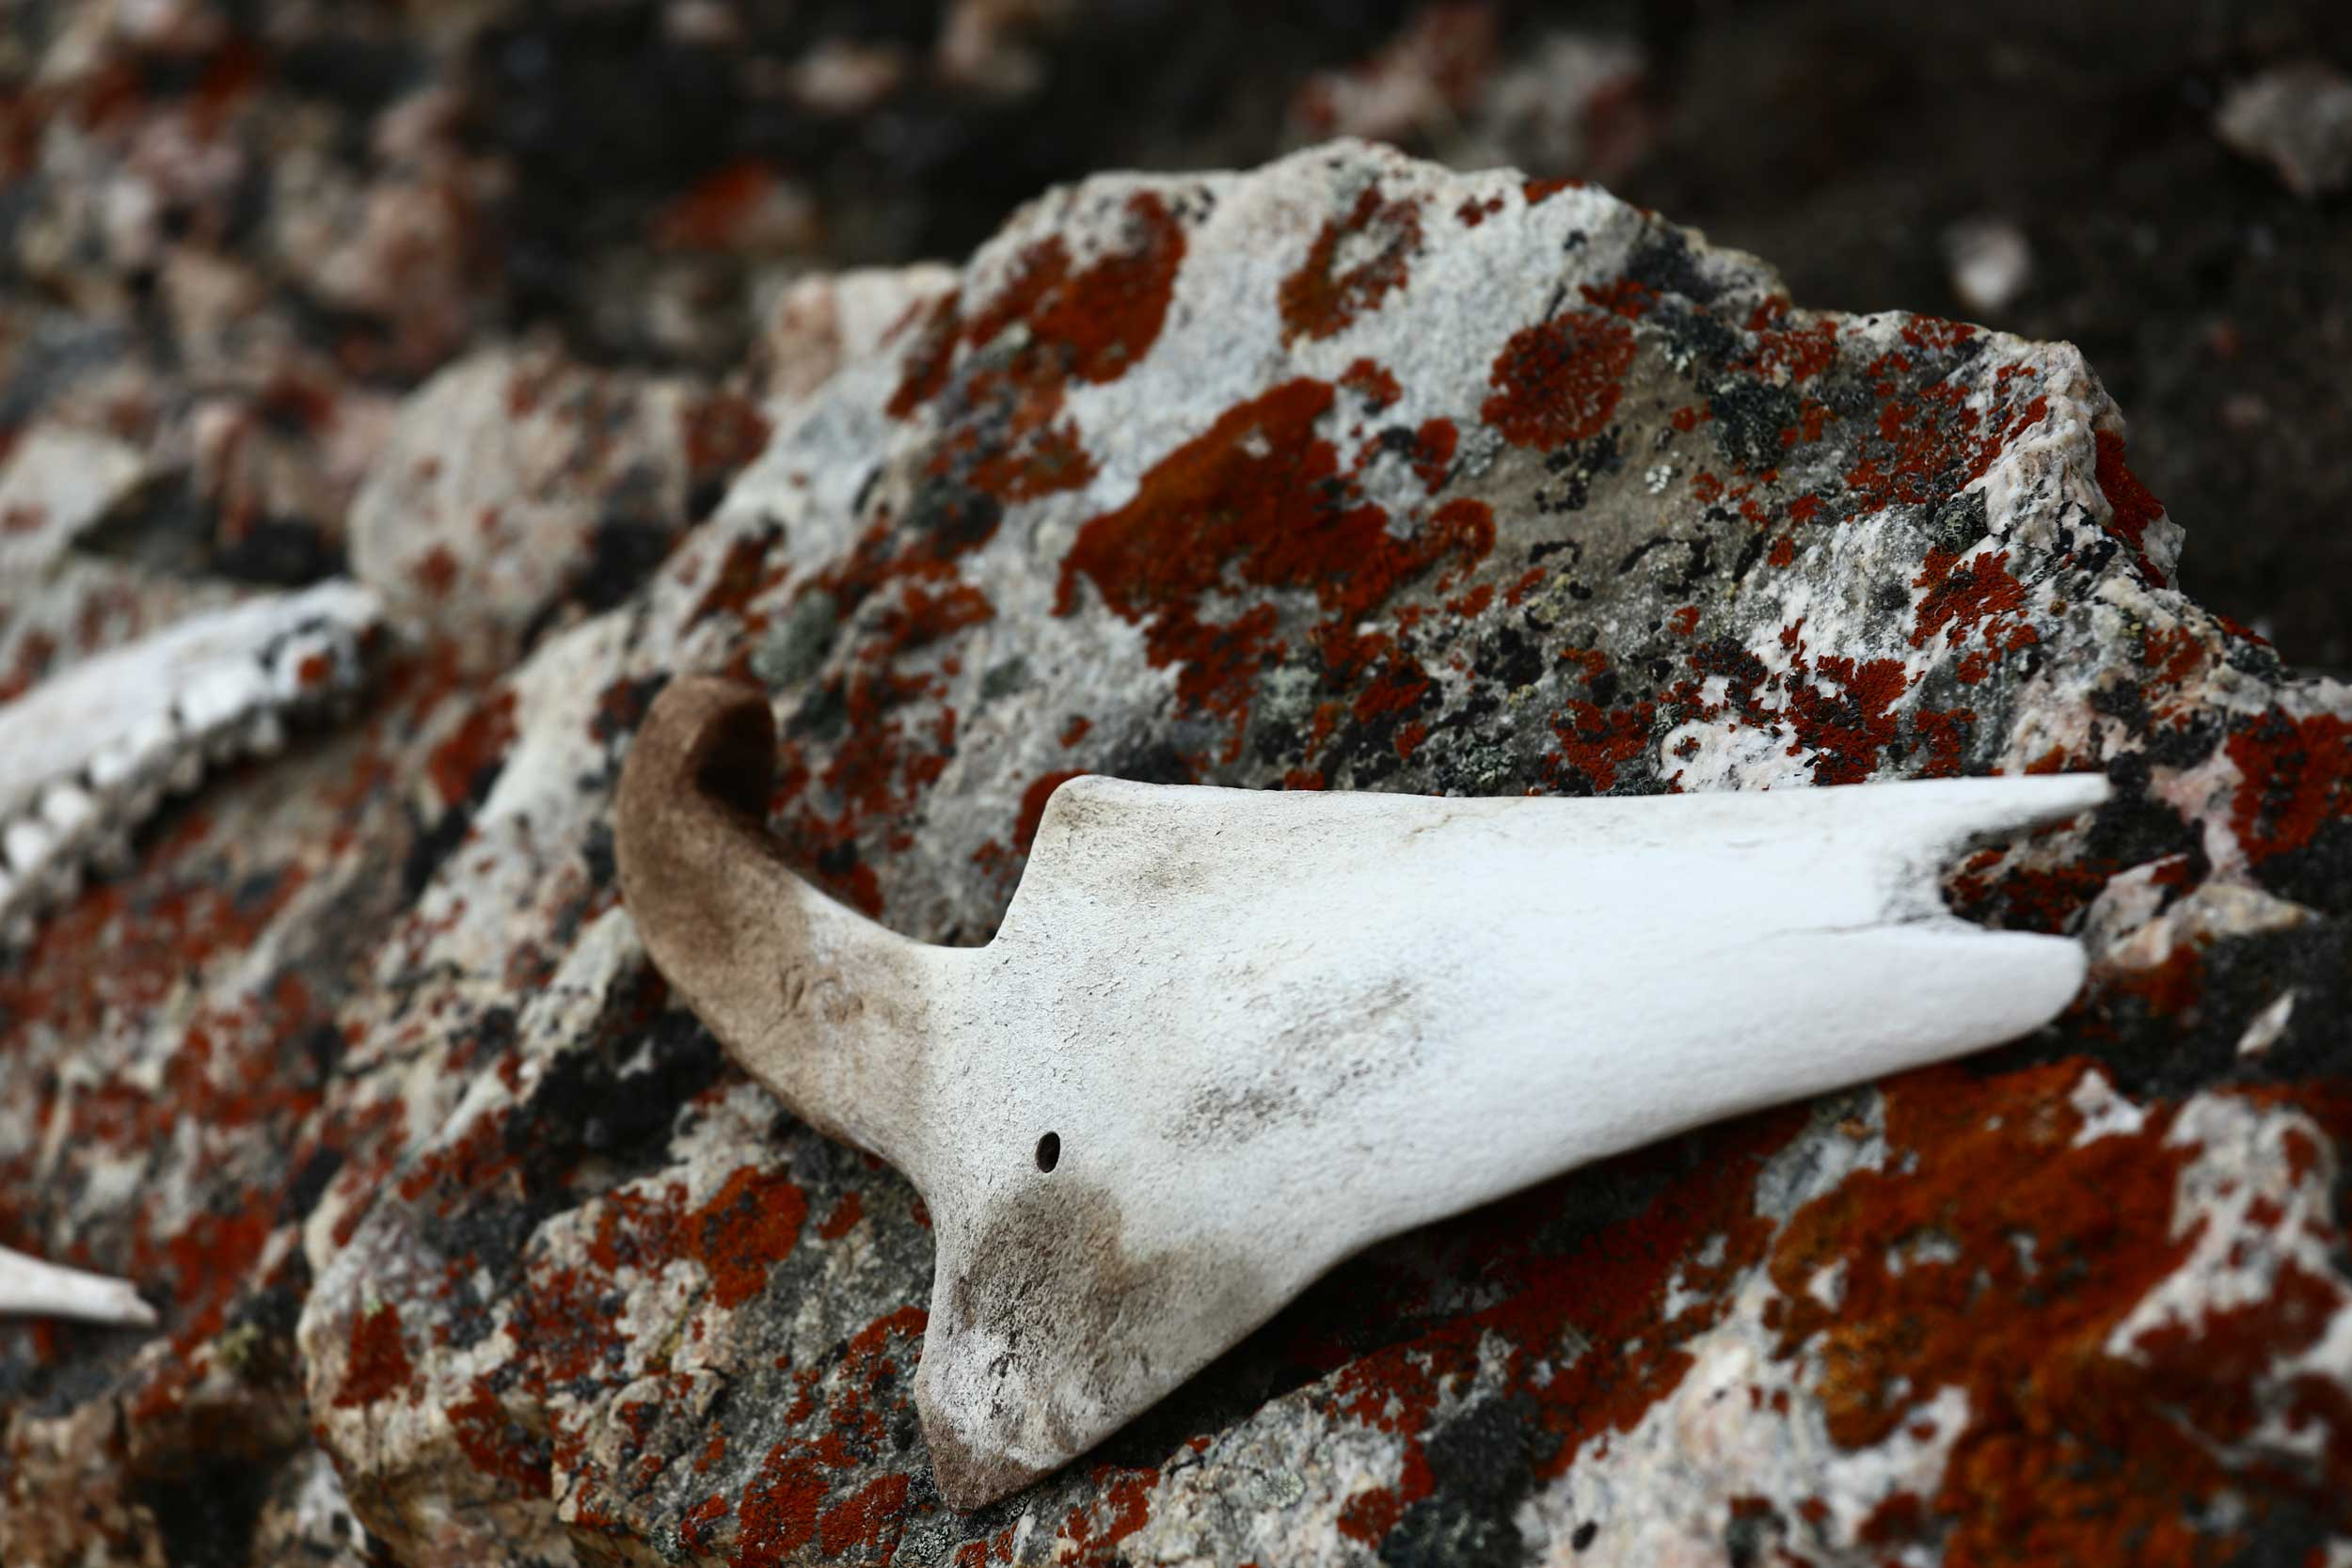 A bone fragment on a rock with orange lichen on it in Greenland